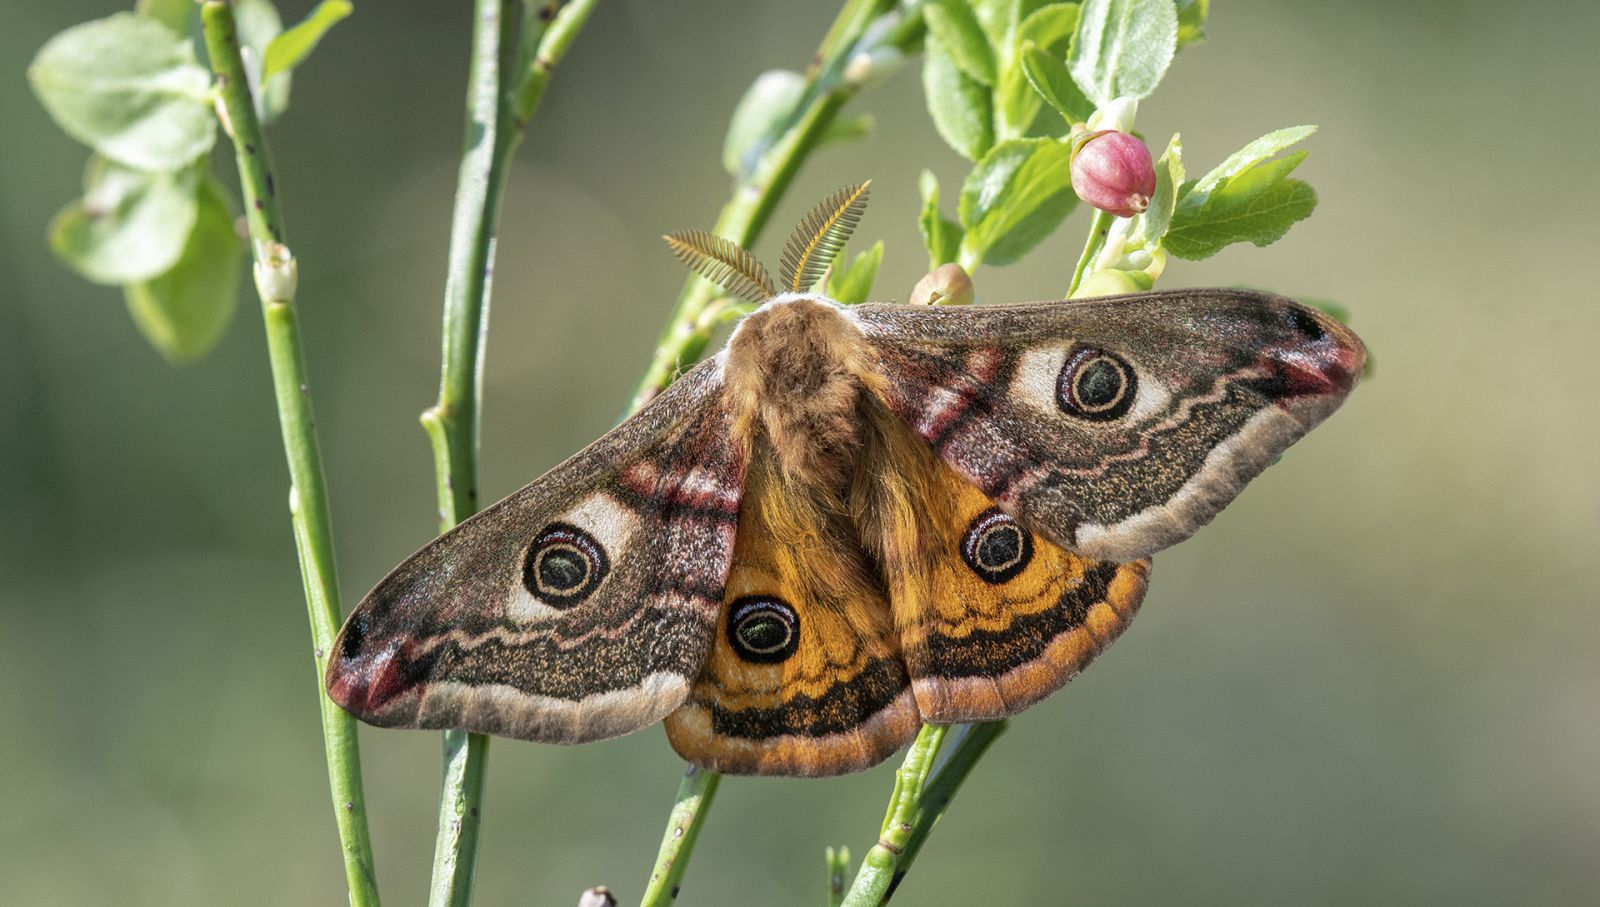 emperor moth by Yorkshire wildlife photographer John Gardner